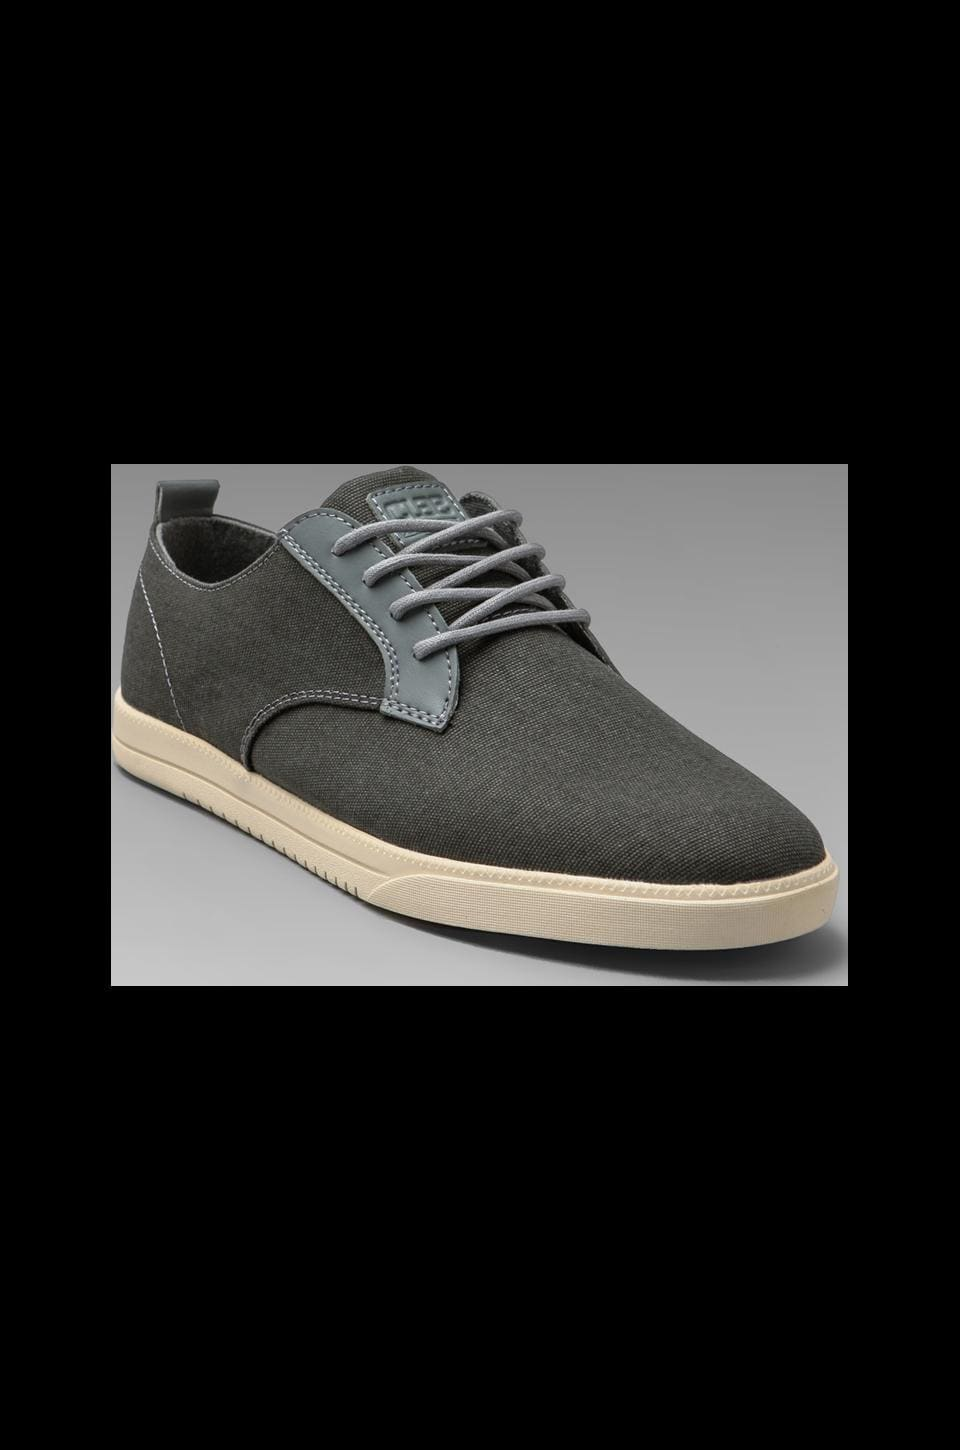 Clae Ellington Canvas in Charcoal